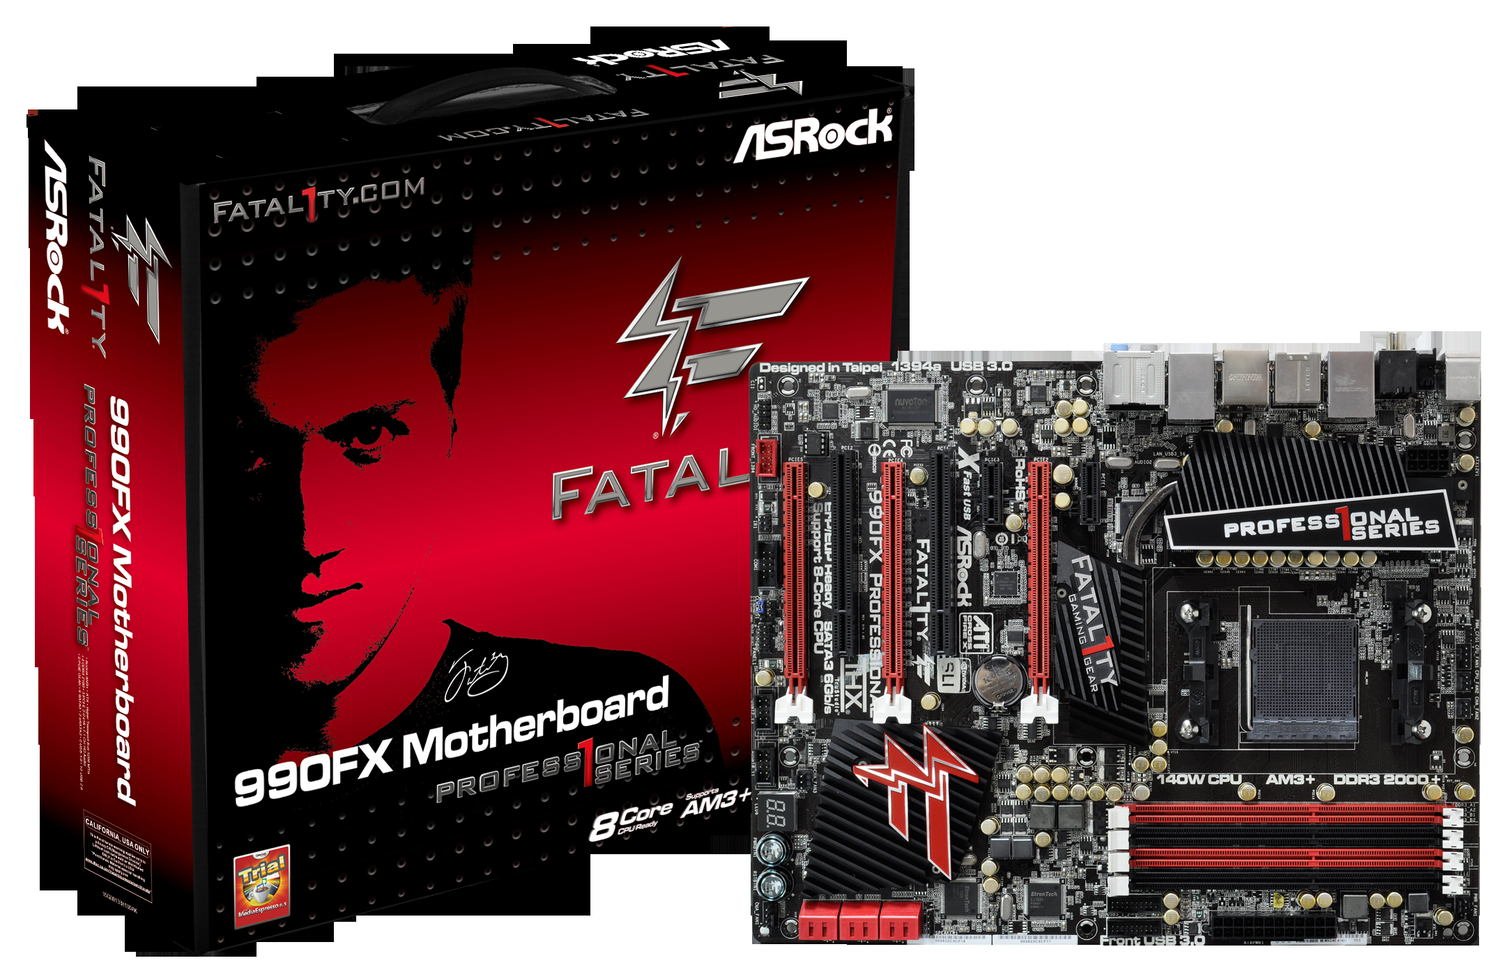 asrock_and_fatal1ty_merge_once_again_in_990fx_style